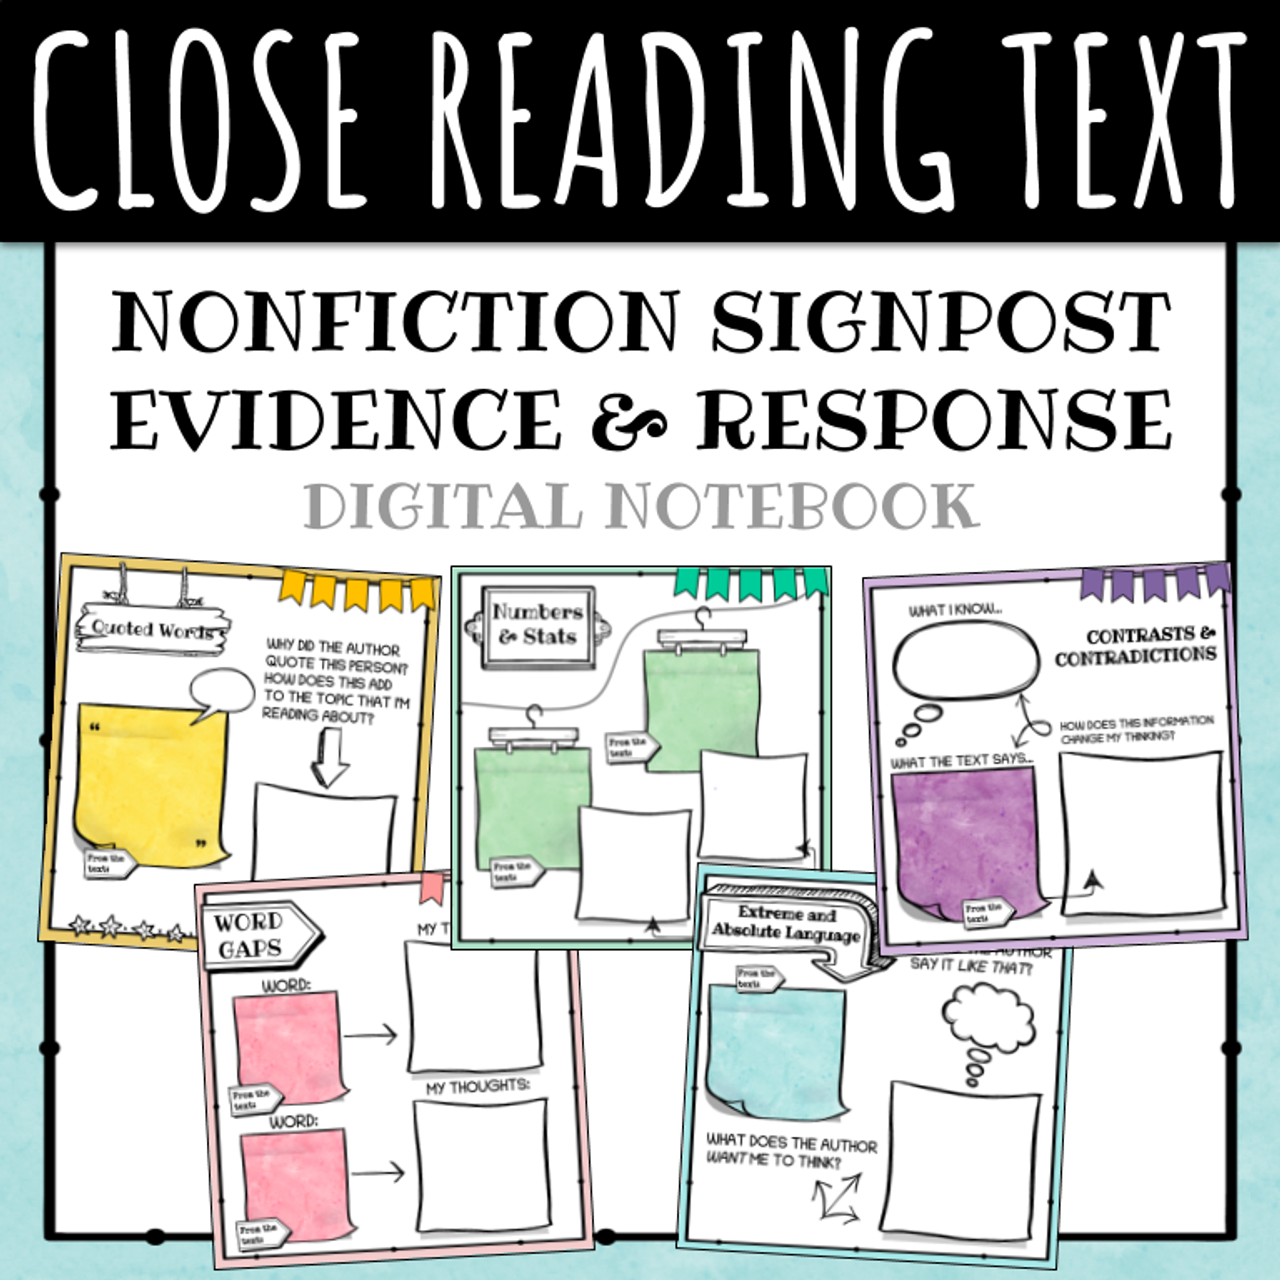 Close Reading Signposts: Digital Log for Nonfiction Text